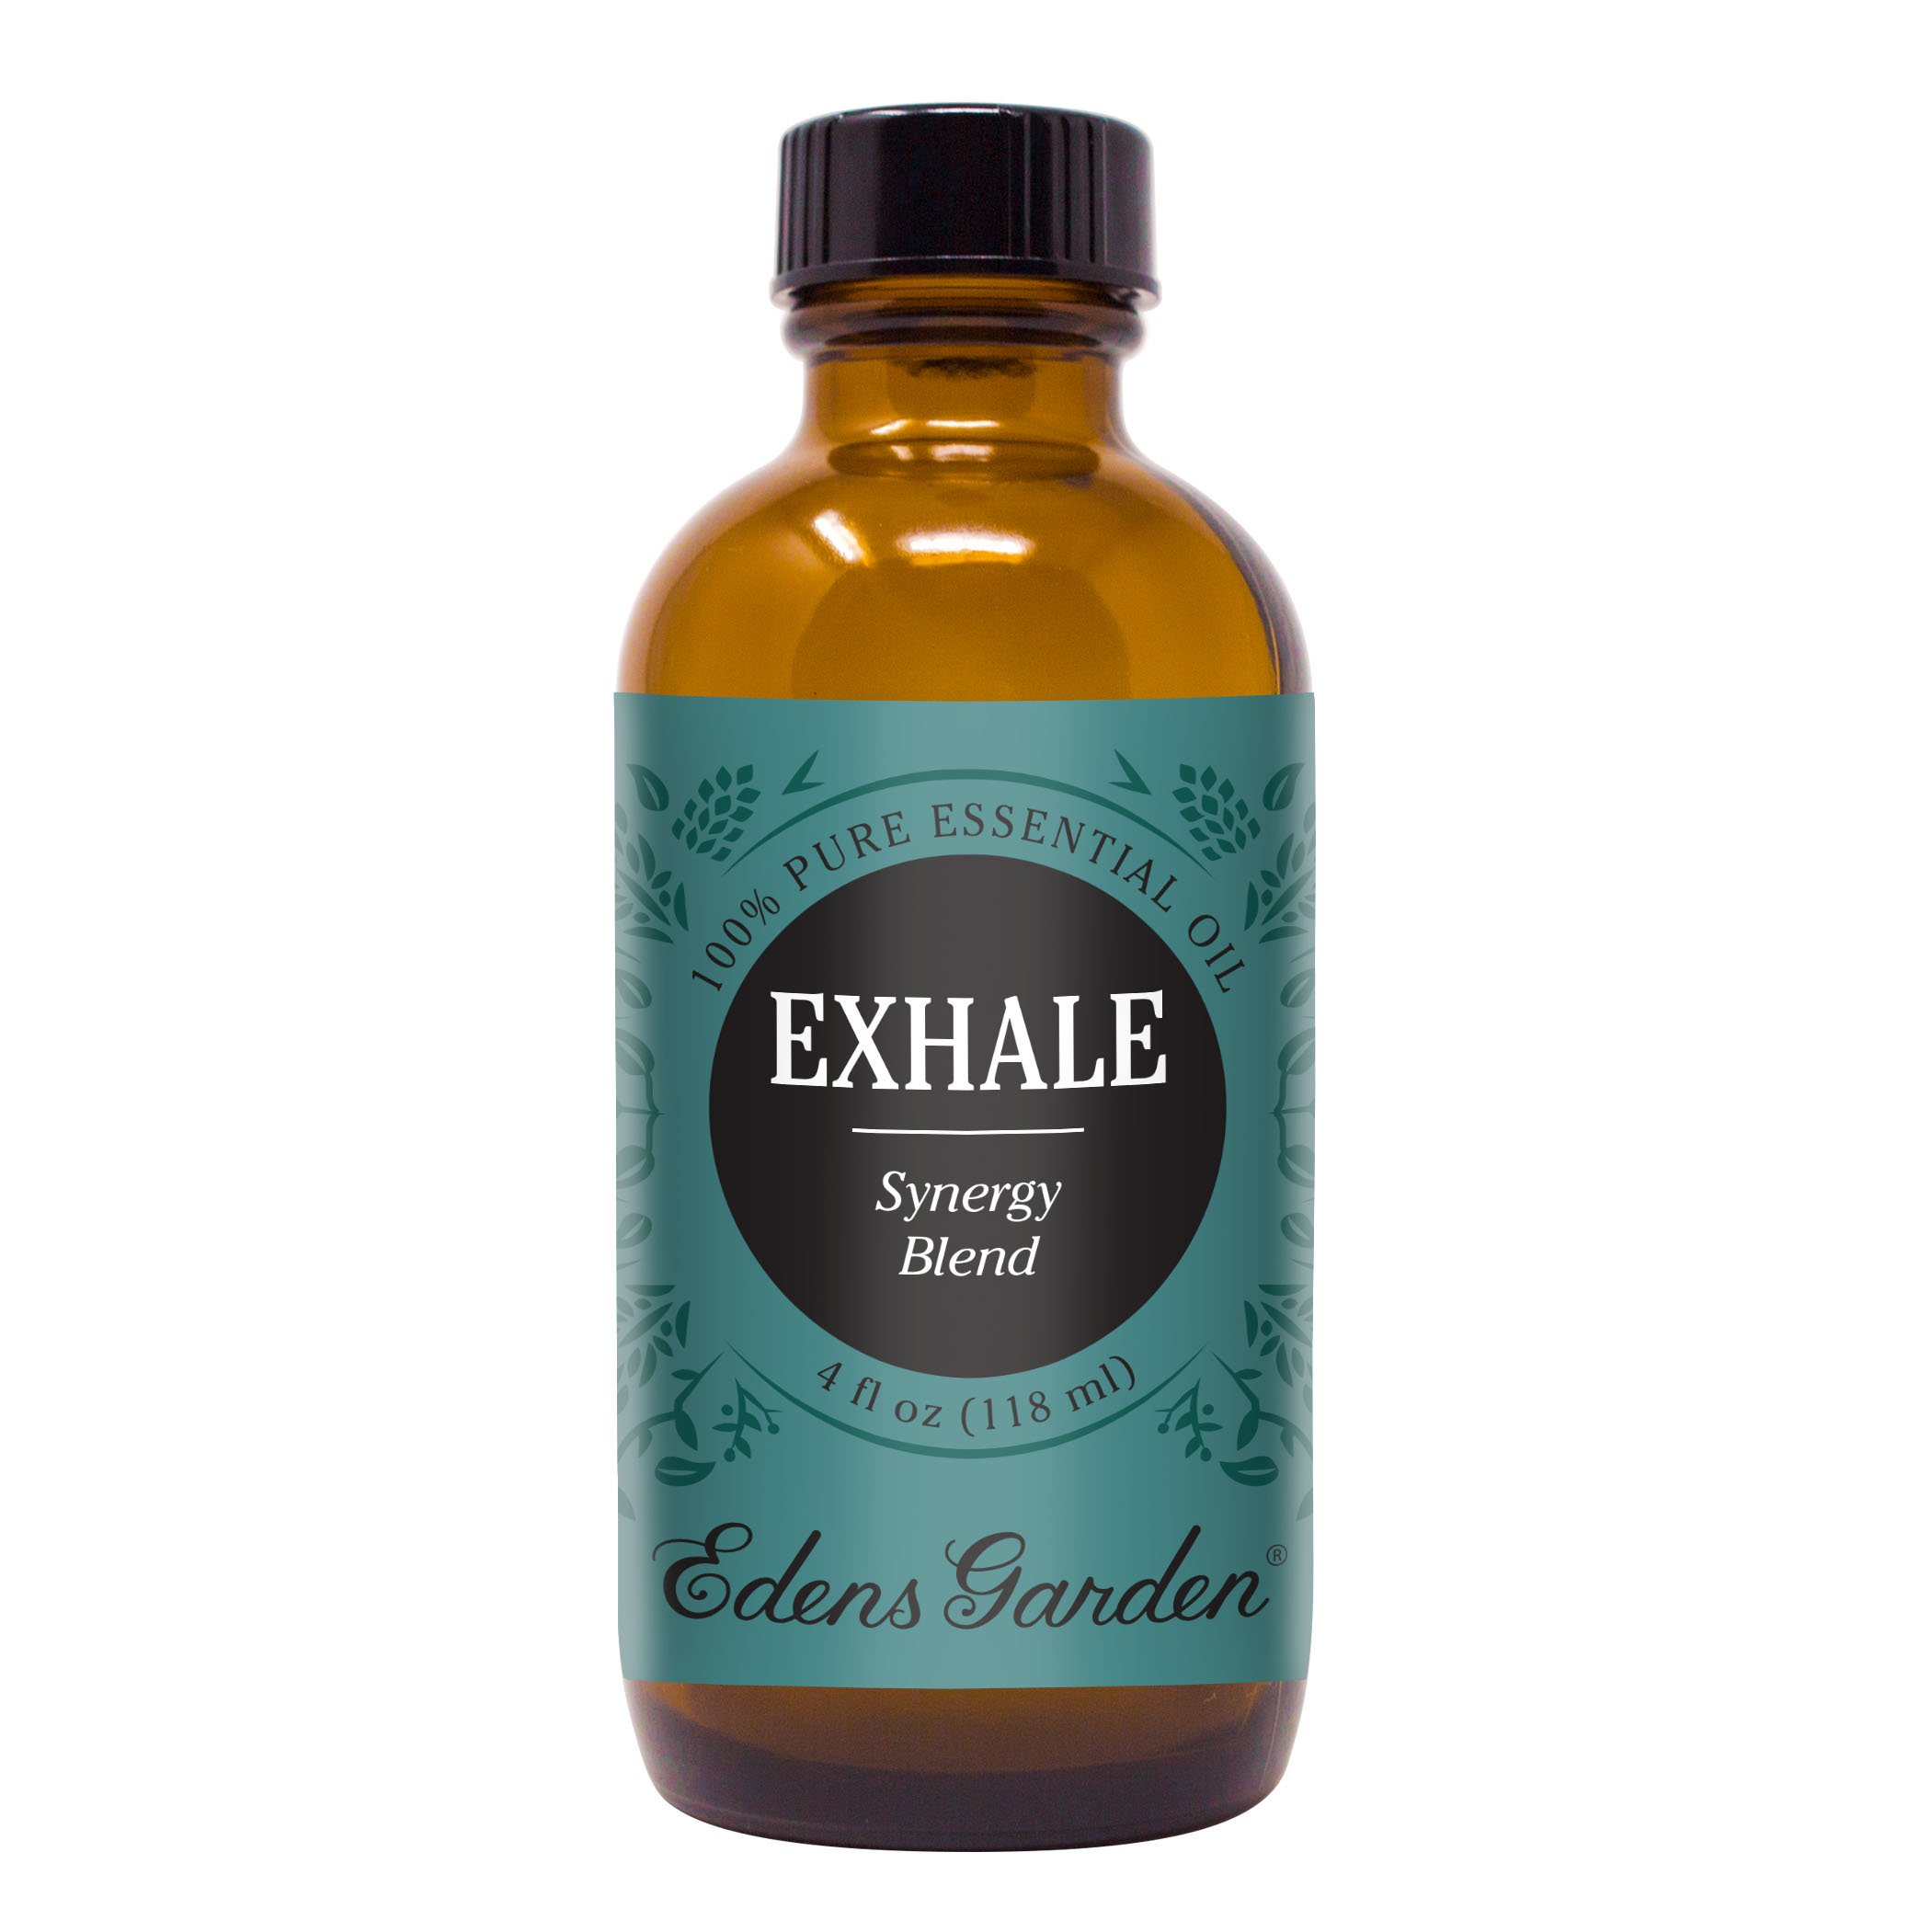 Edens Garden Exhale Essential Oil Synergy Blend, 100% Pure Therapeutic Grade (Highest Quality Aromatherapy Oils- Allergies & Congestion), 118 ml